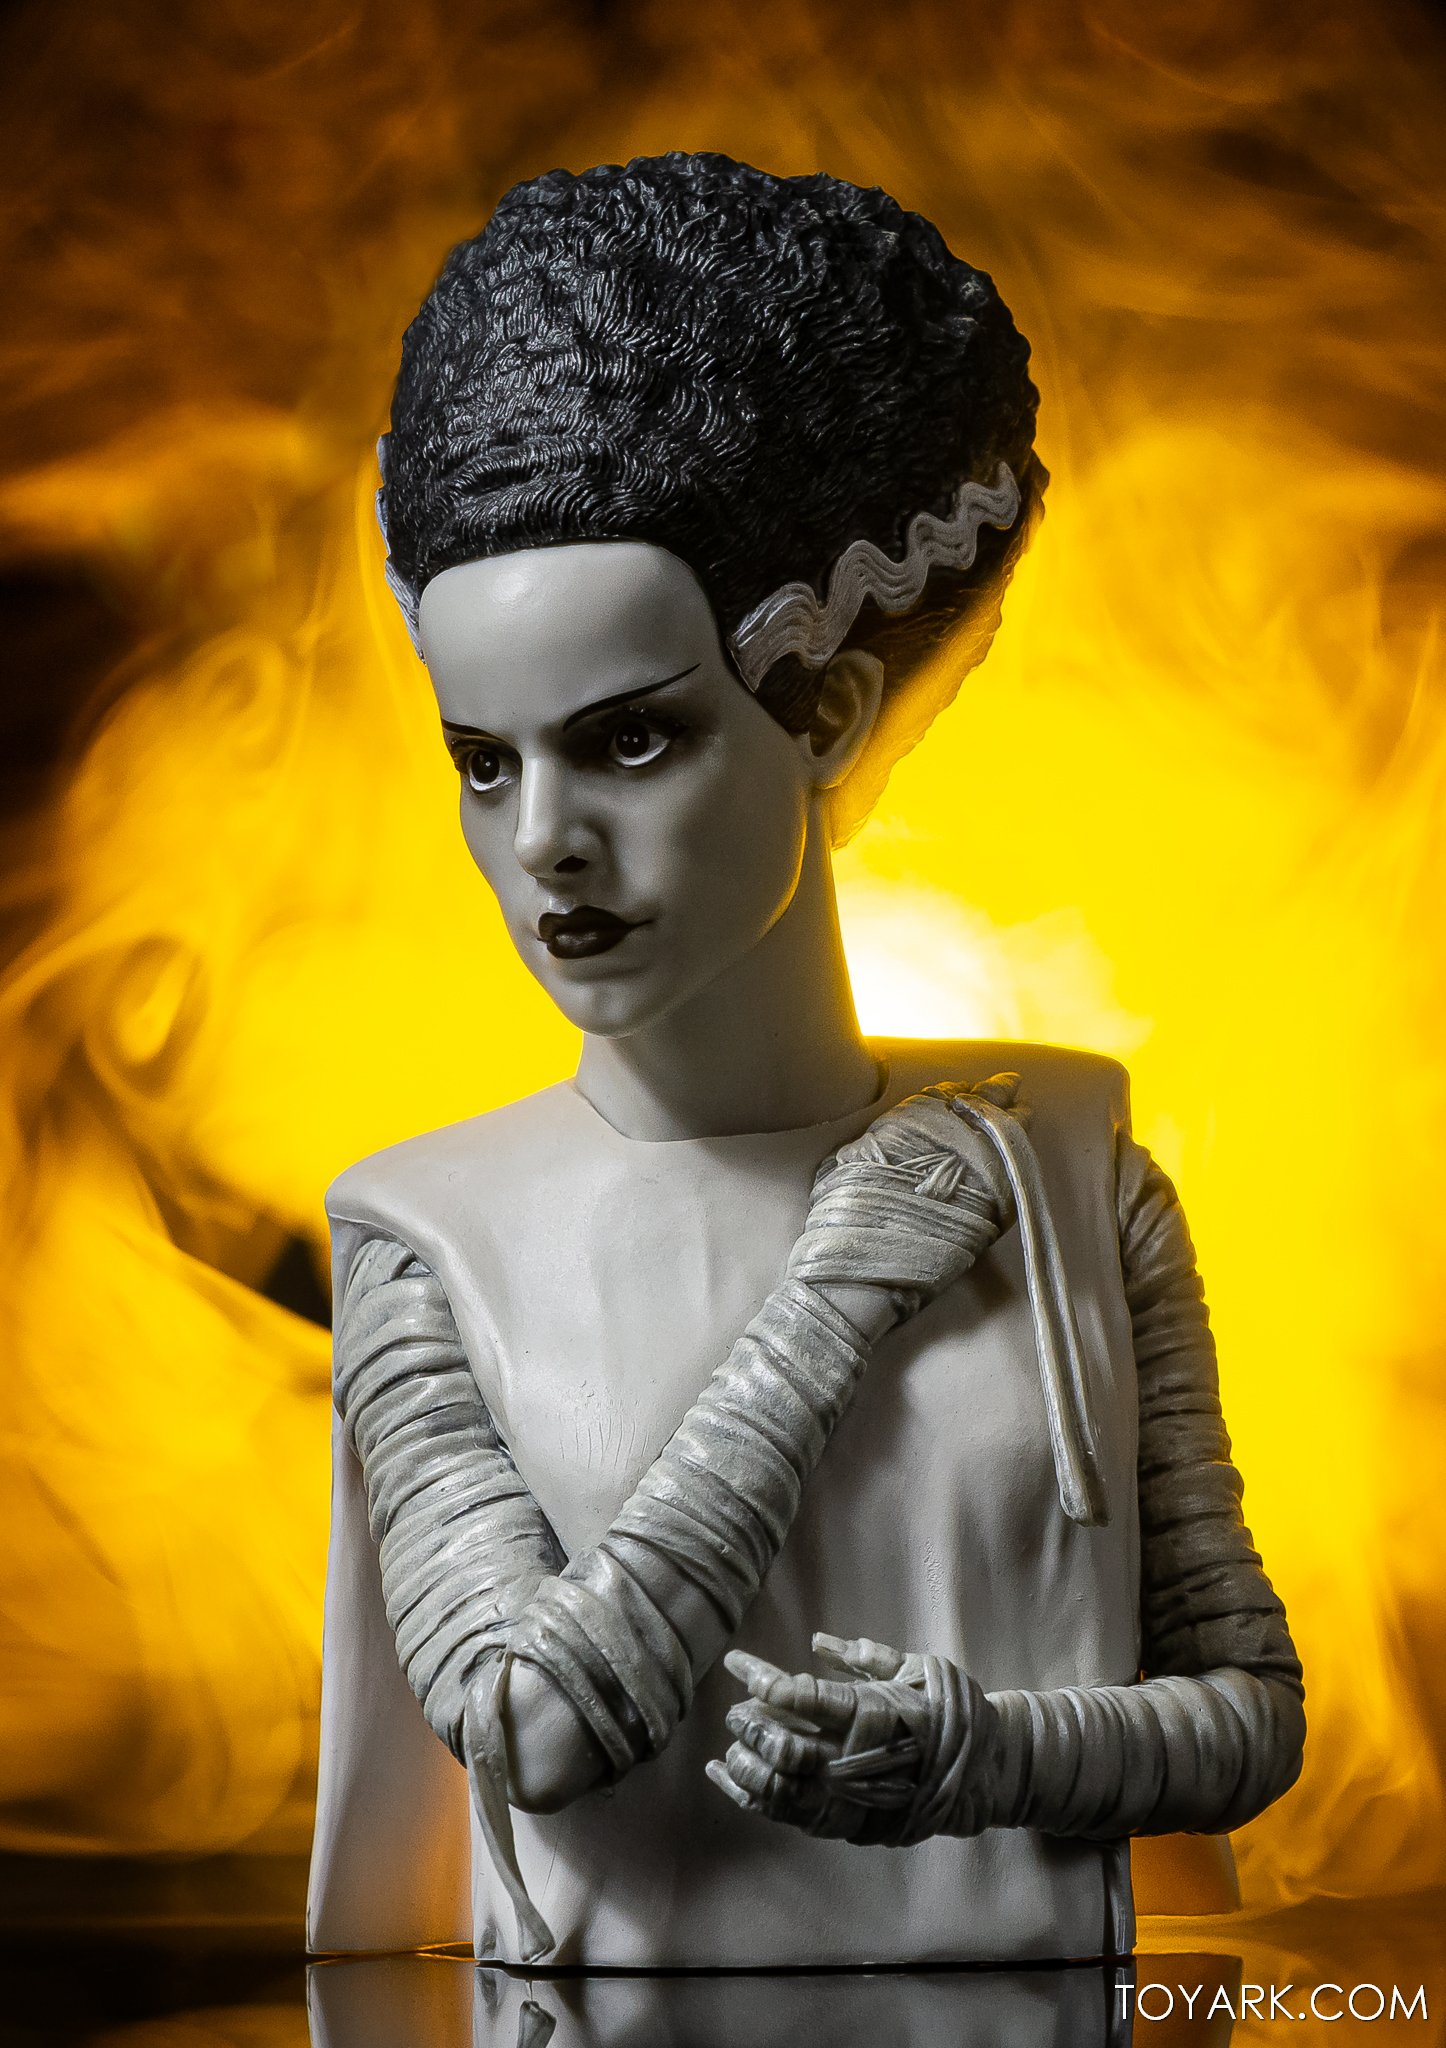 https://news.toyark.com/wp-content/uploads/sites/4/2020/10/Bride-of-Frankenstein-Spinature-013.jpg